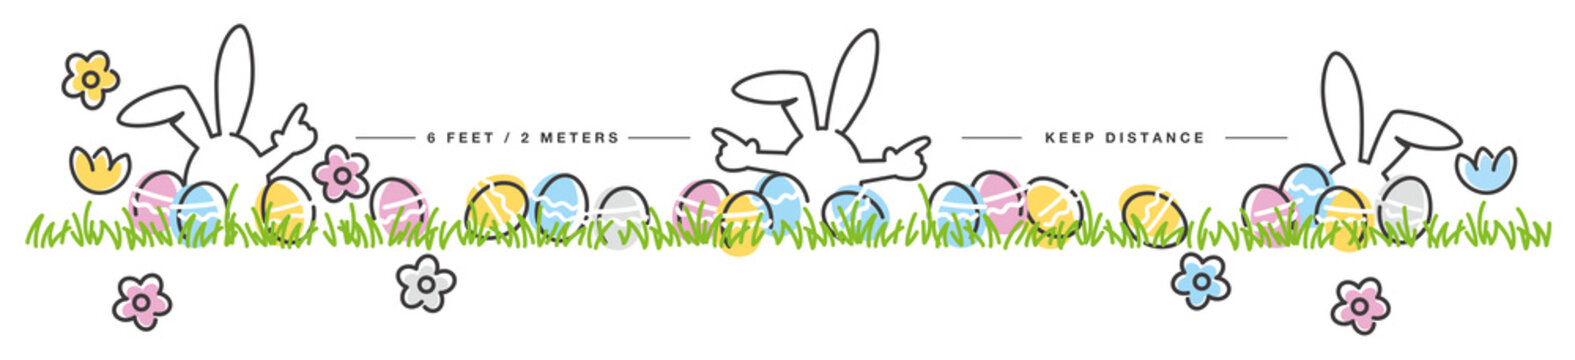 Easter social distancing keep distance handwritten white bunnies, eggs, flowers, grass on white background drawing in line design